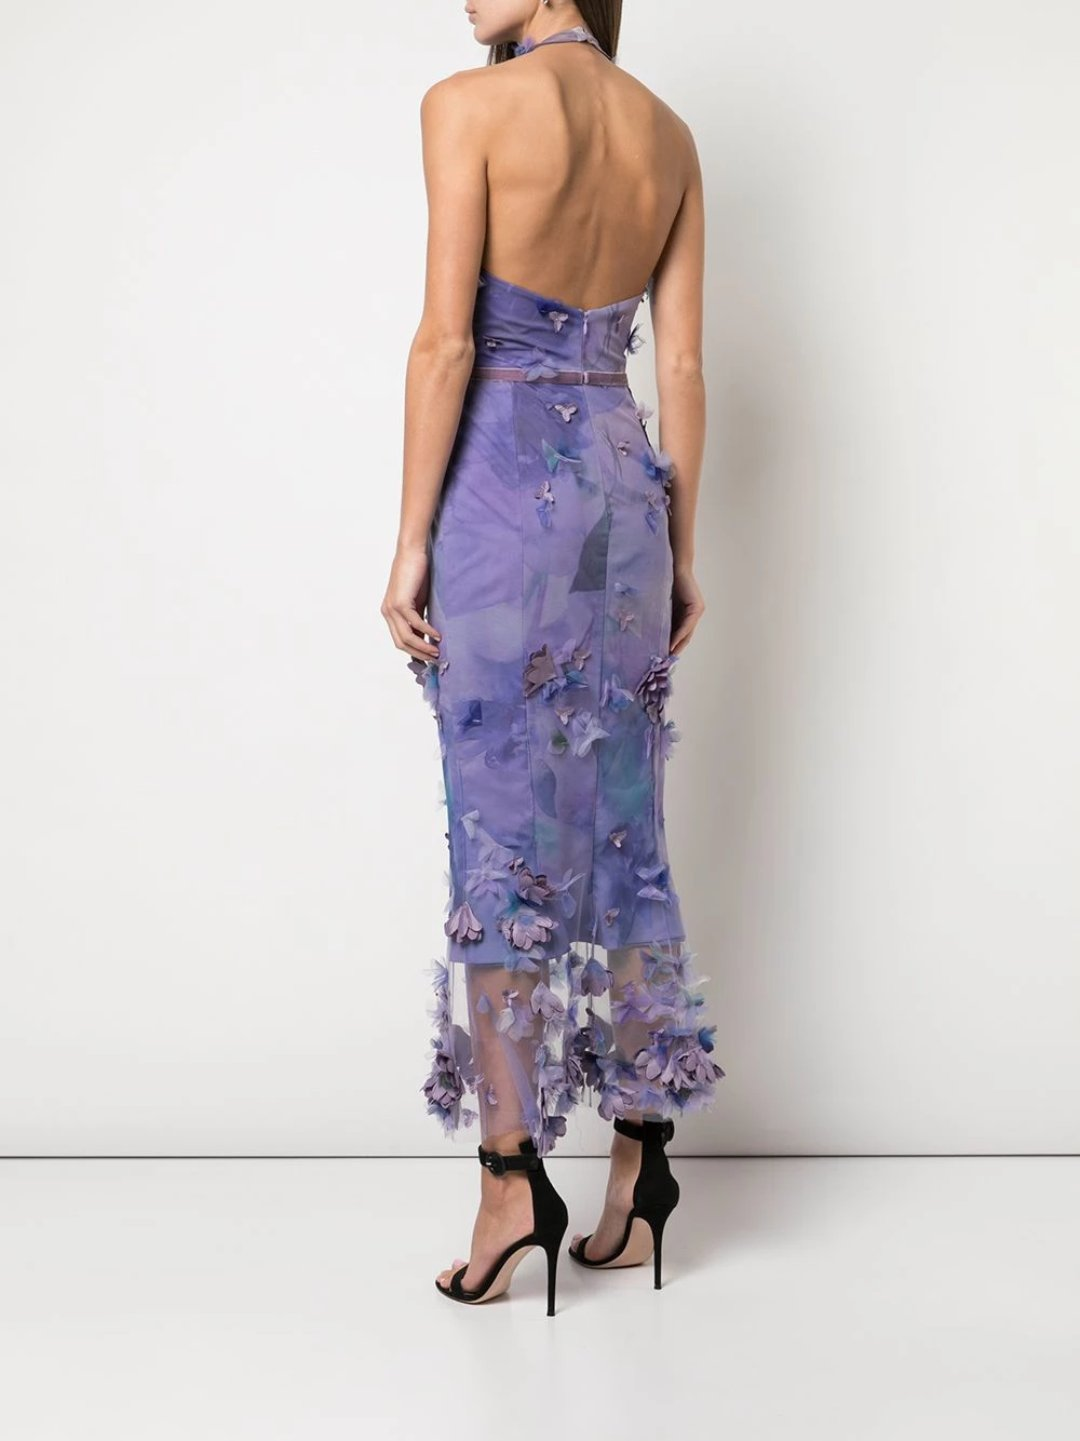 Halter 3D Floral Print Cocktail Dress